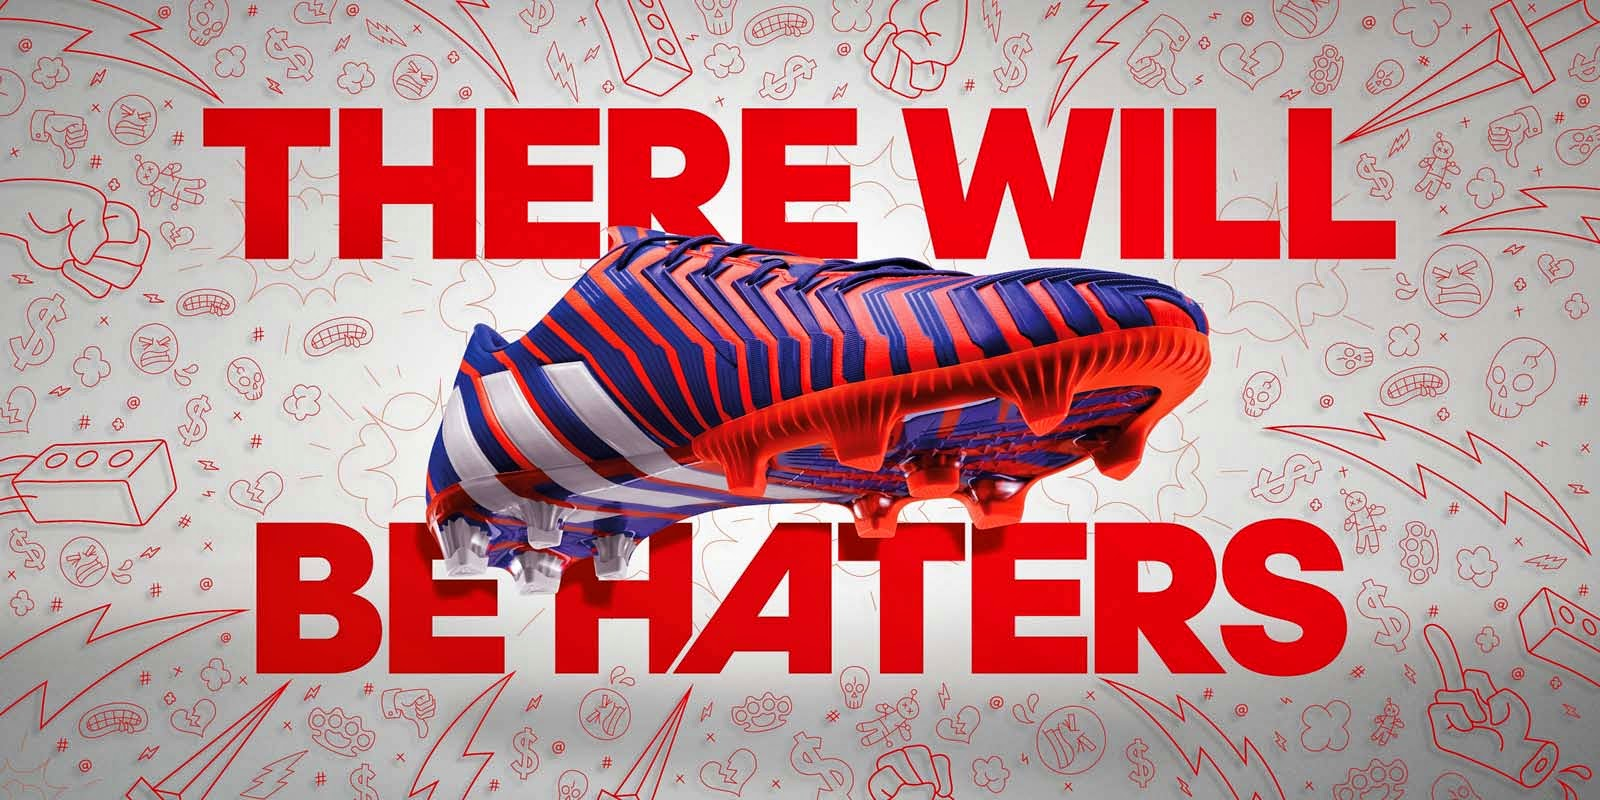 d1a3cd9484f2f Qeai Artblog  There Will Be Haters New Adidas Football Ad  VIDEO